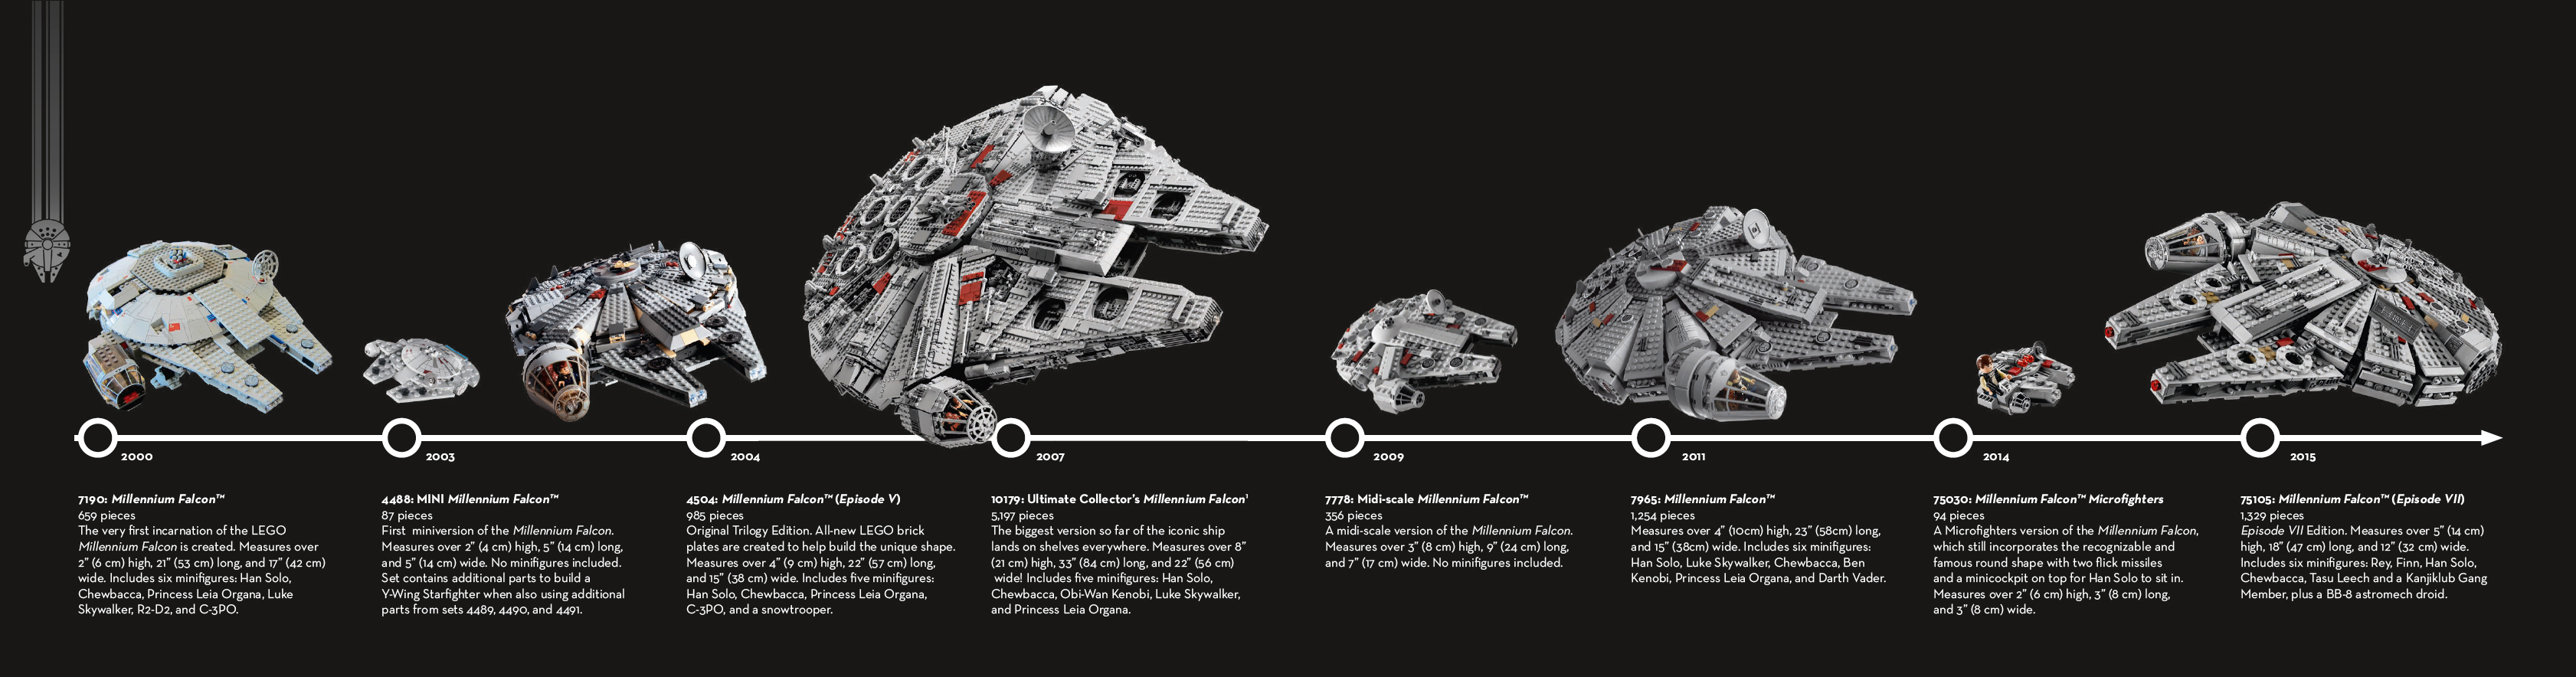 new millennium falcon is lego s biggest set ever polygon. Black Bedroom Furniture Sets. Home Design Ideas